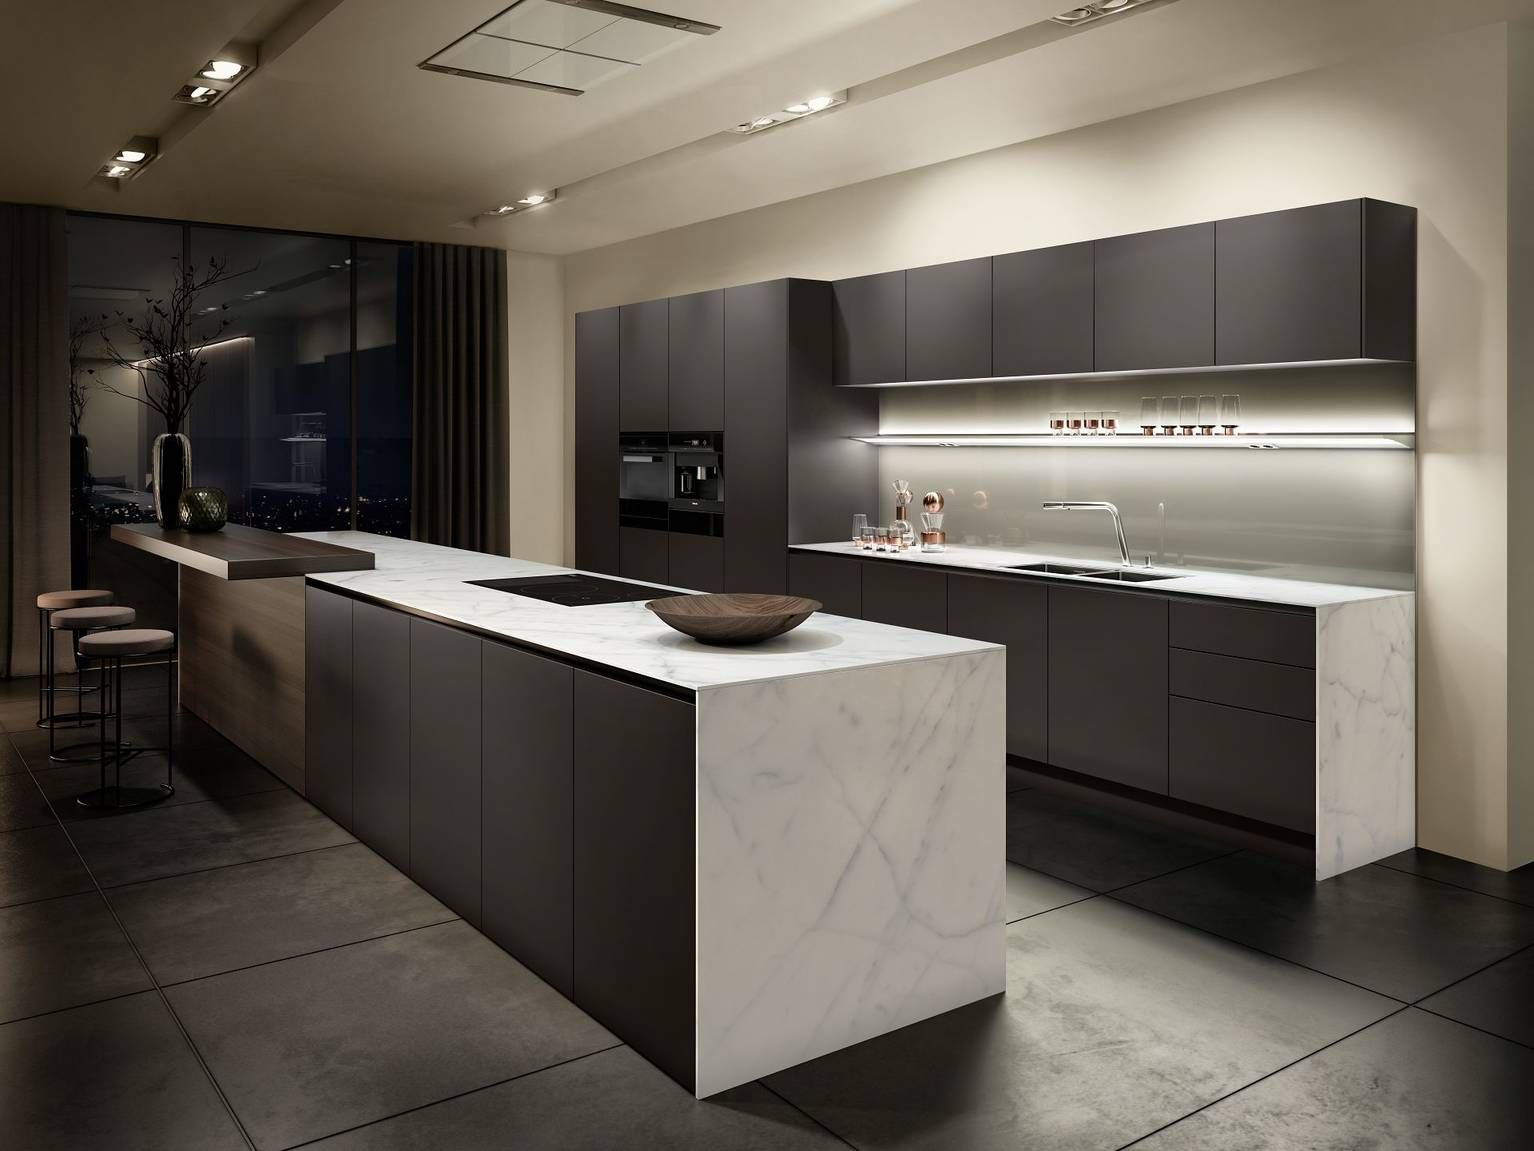 Siematic pure s2 se kitchen in a brown tone from the siematic